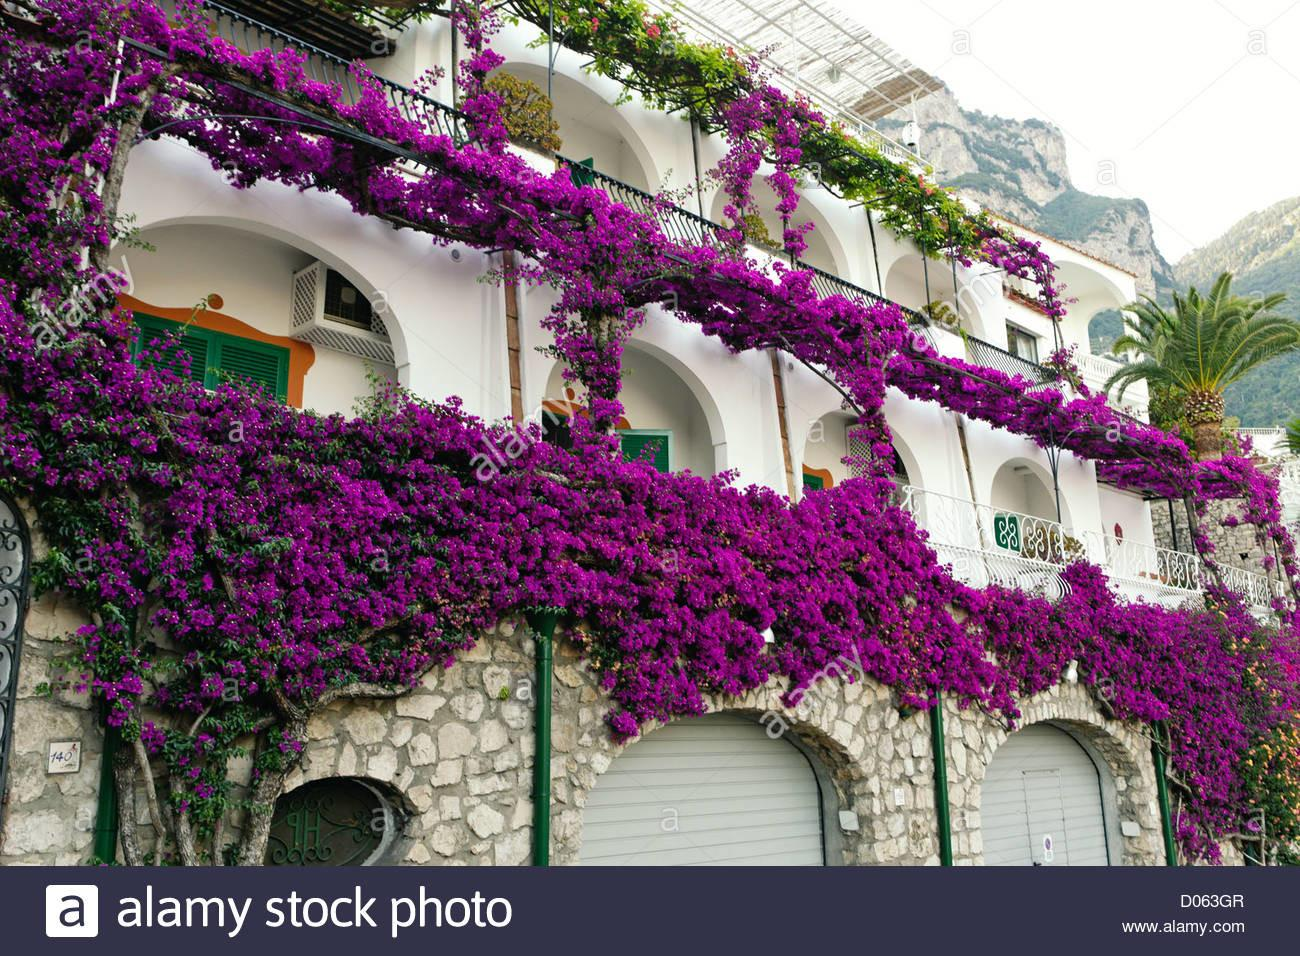 Purple Flower Covered House Facade Hotel Poseidon